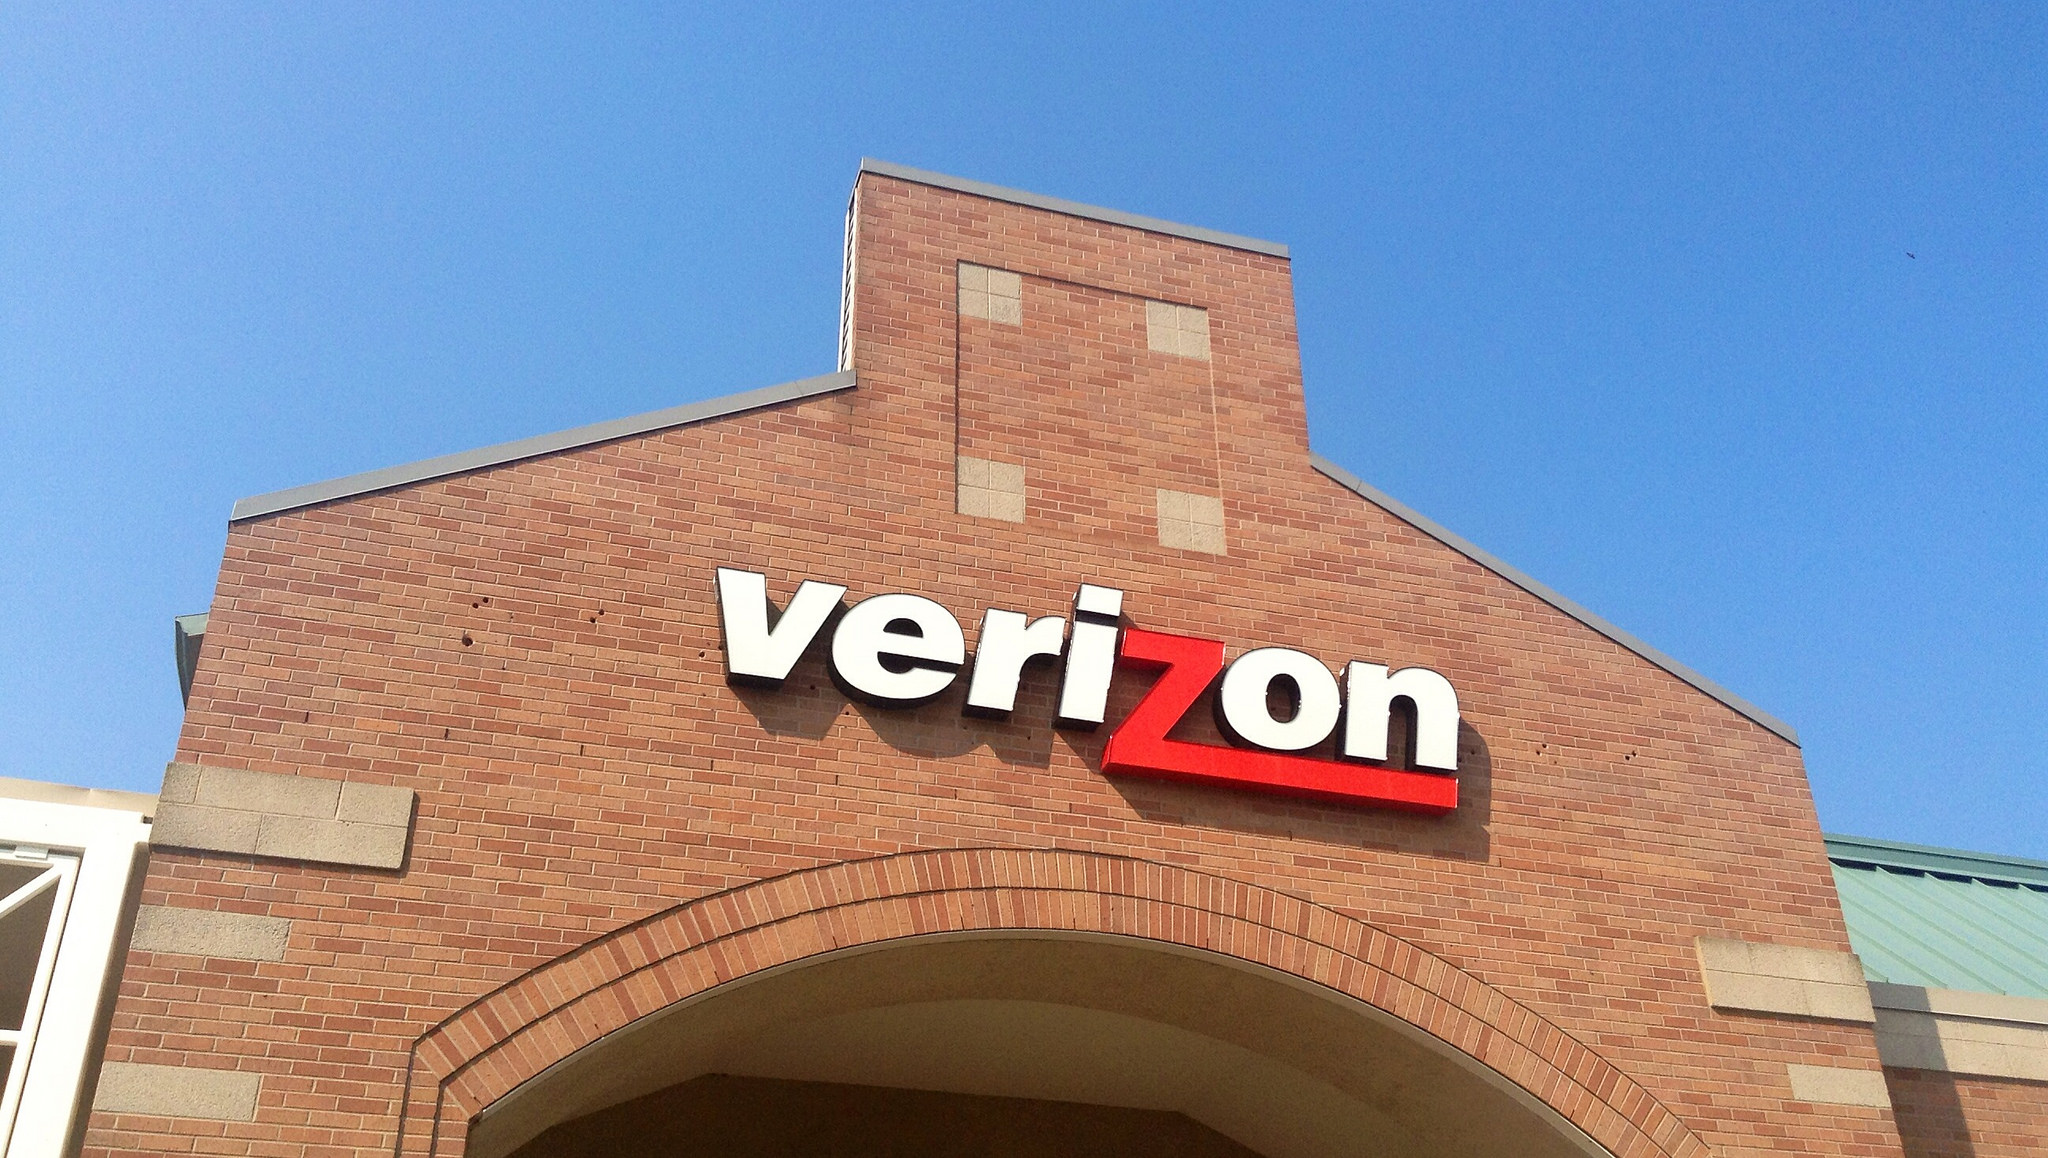 Verizon will start locking phones to deter theft